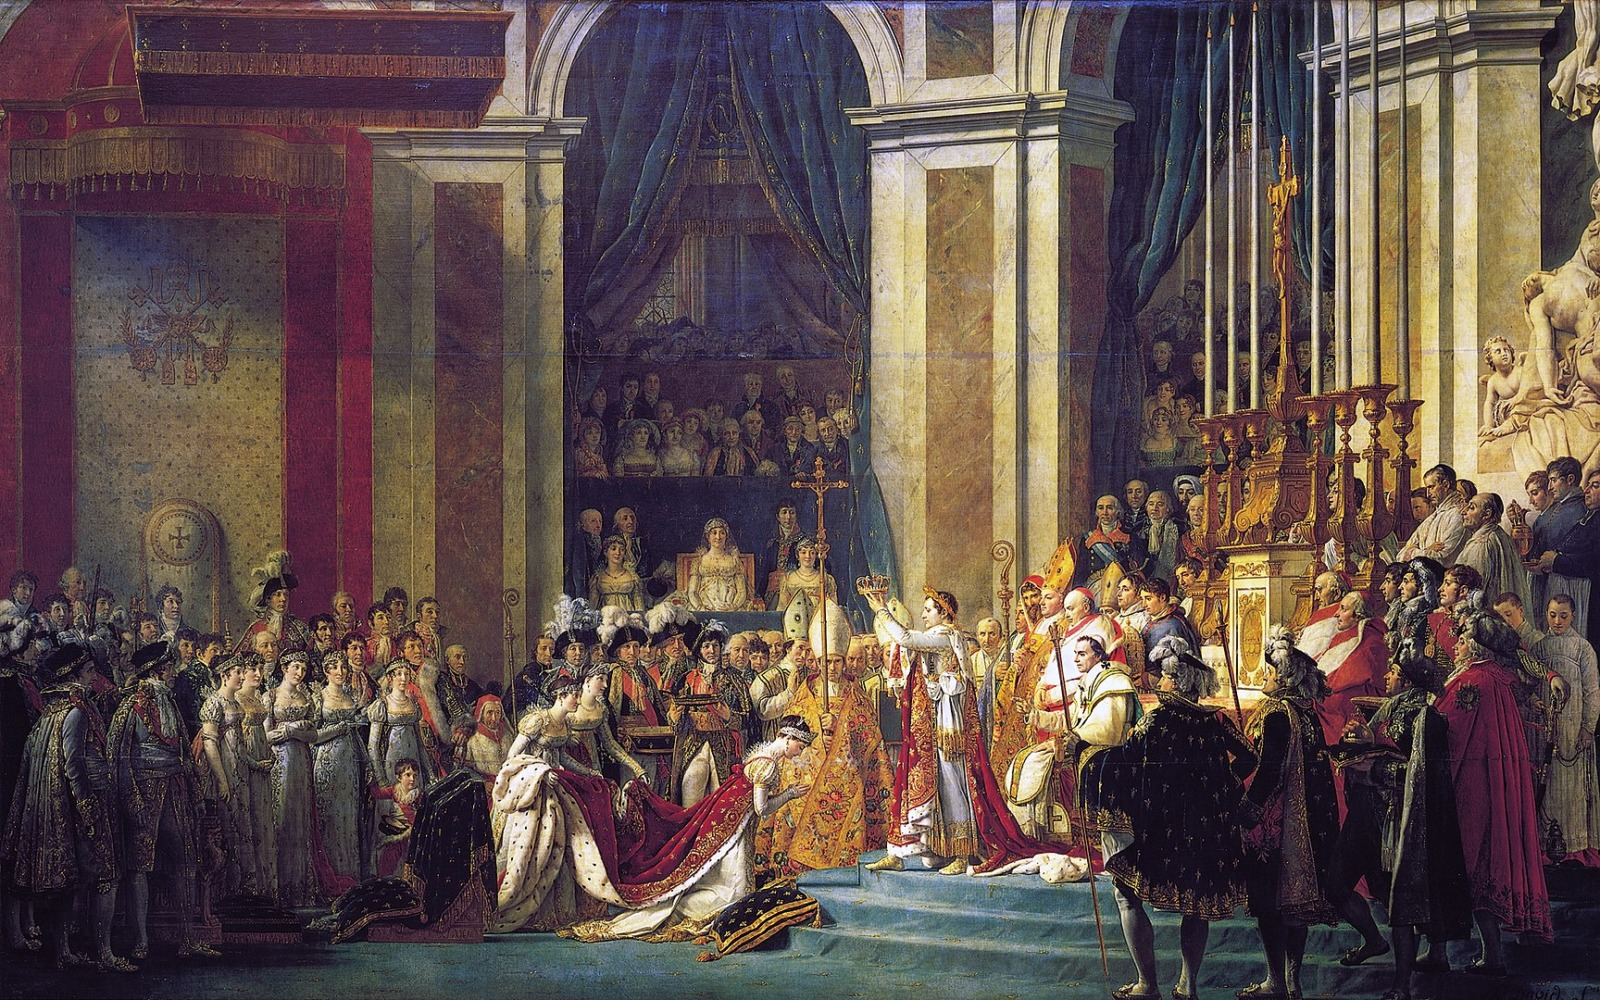 Coronation of Napoleon inside the cathedral. Painting by Jacques-Louis David